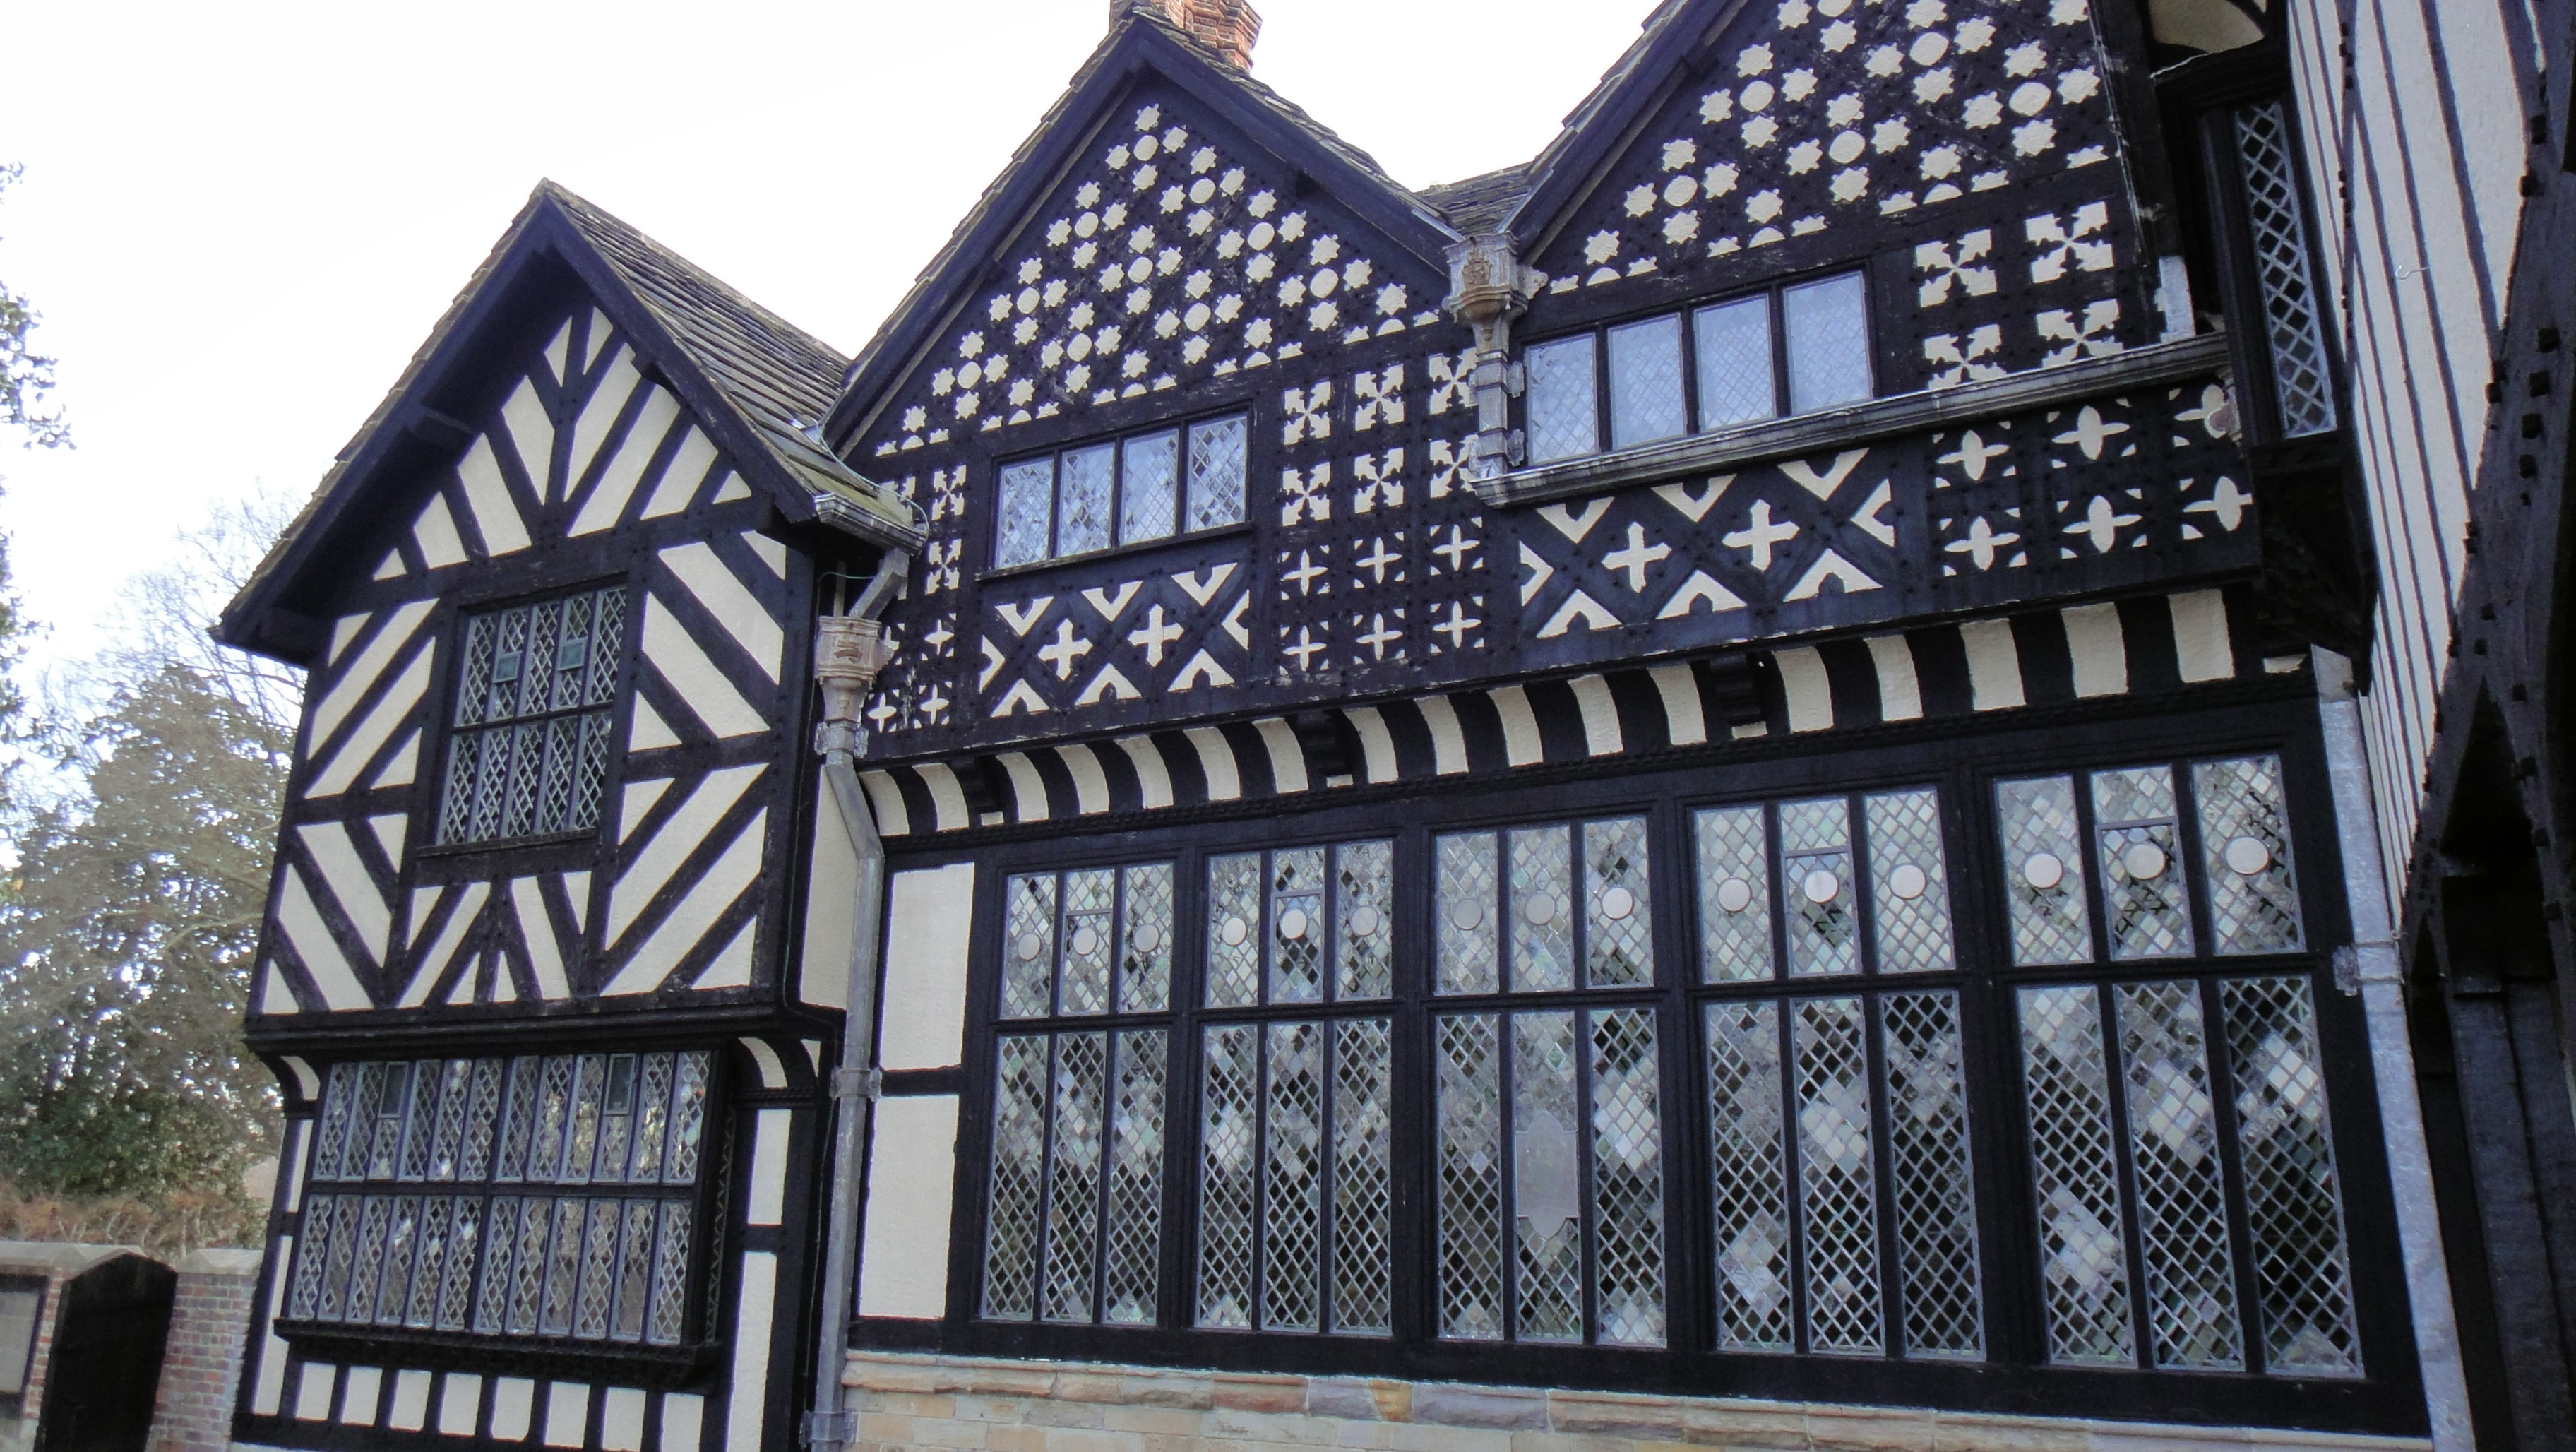 Tudor Architecture file:agecroft hall - tudor architecture - dsc00904 - wikimedia